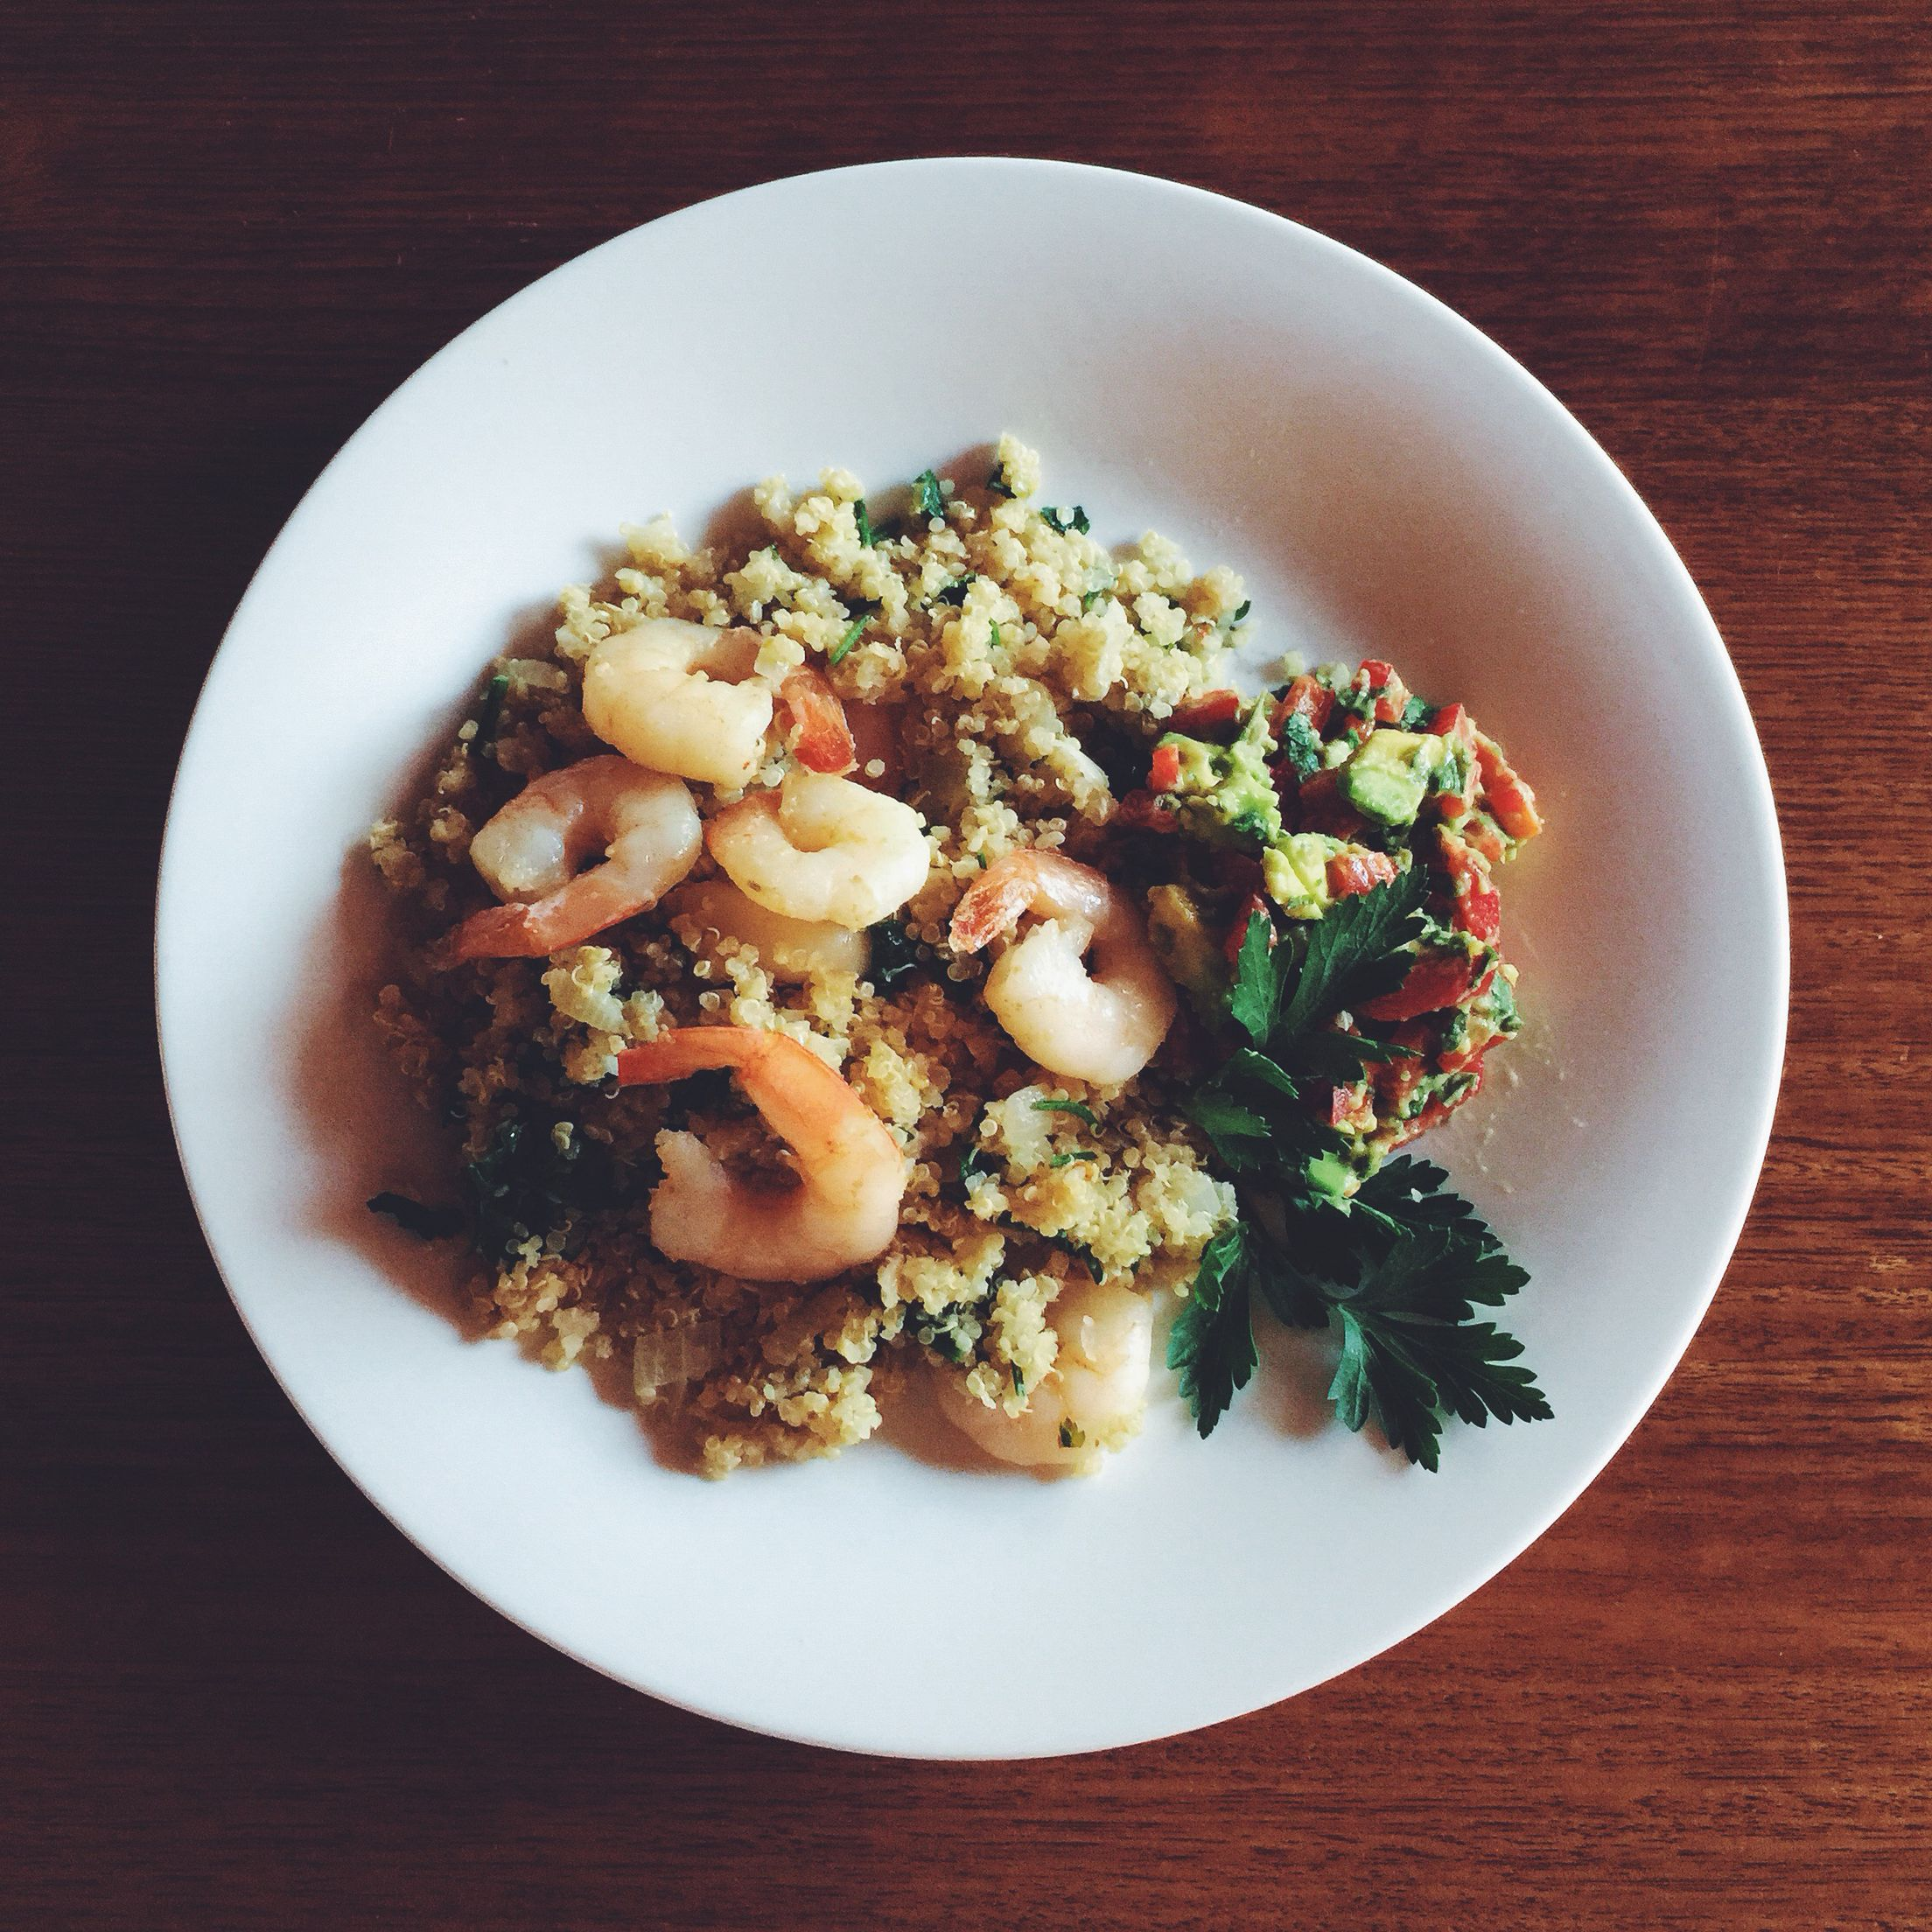 Lemon and Garlic Prawns with Quinoa and Avocado Salsa. Week 3 #iqs8wp #iqs #iquitsugar #iqsjerf